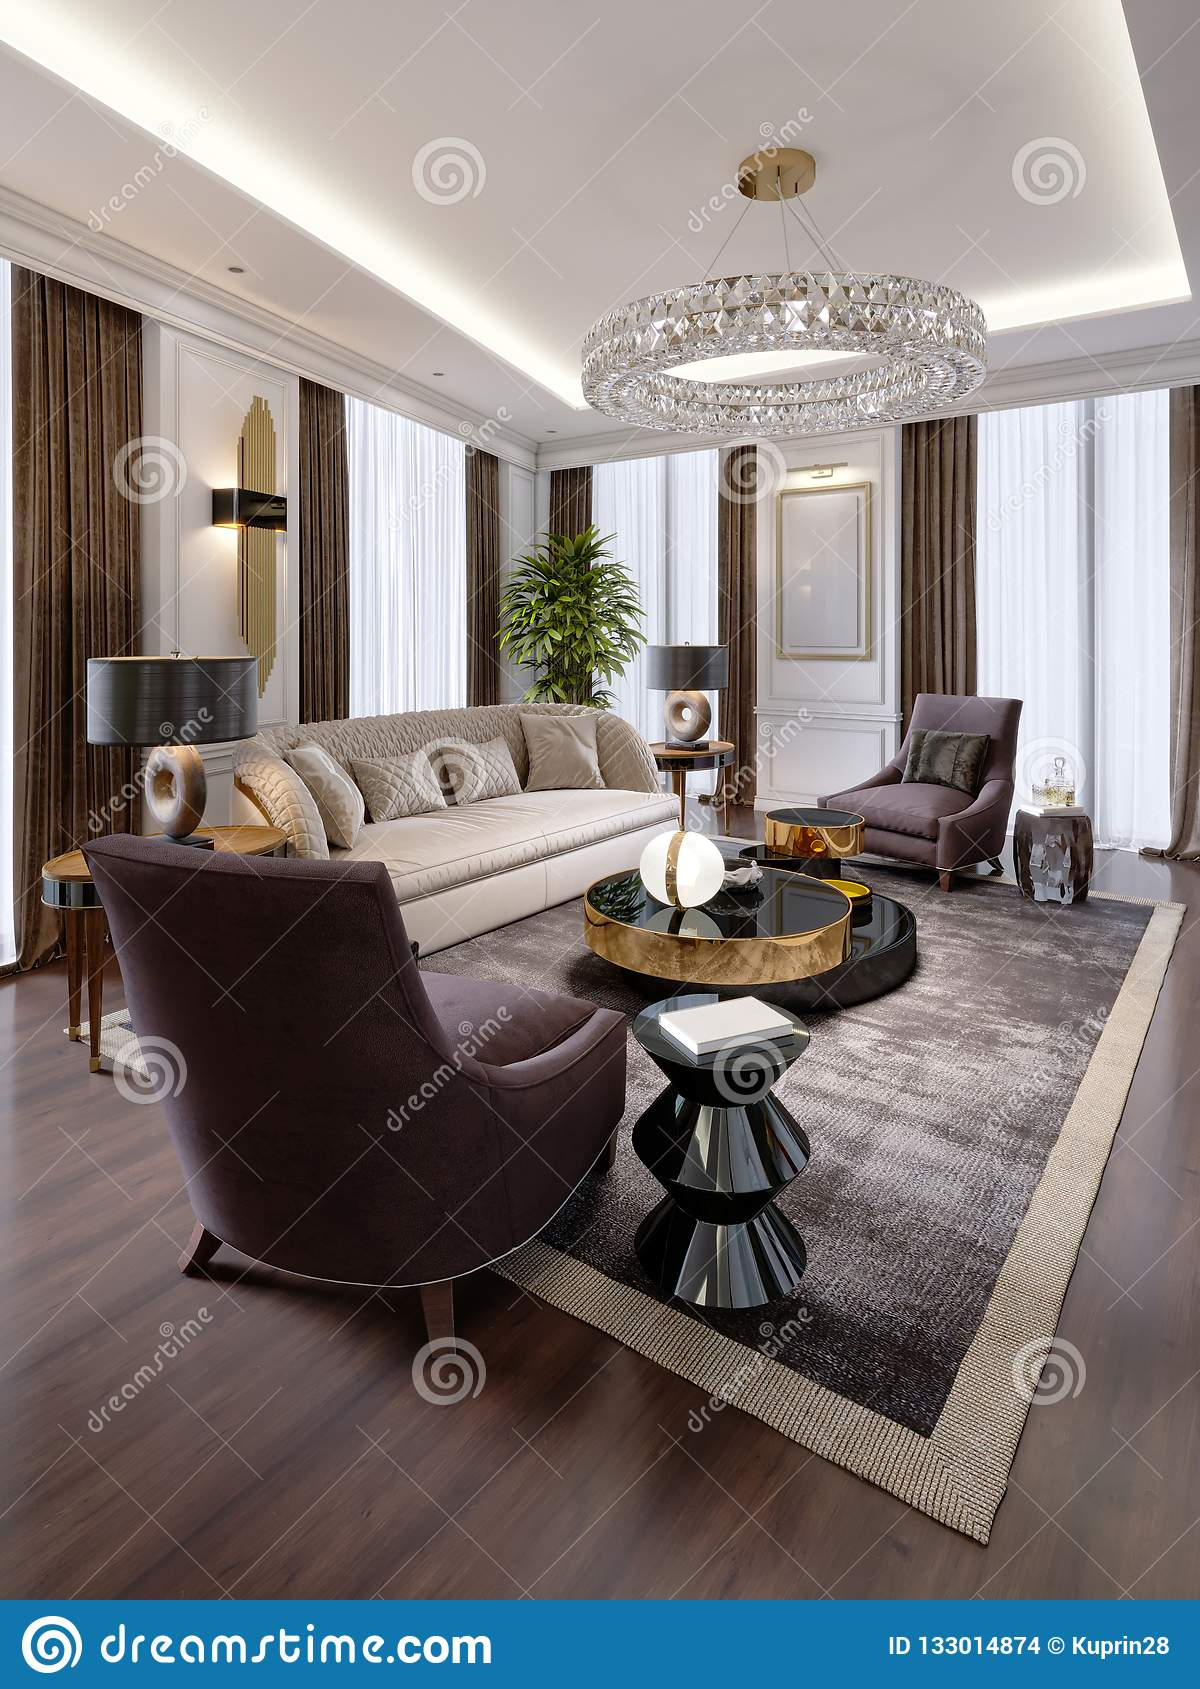 Design Of Luxury Apartments In Modern Style With Designer Furniture ...